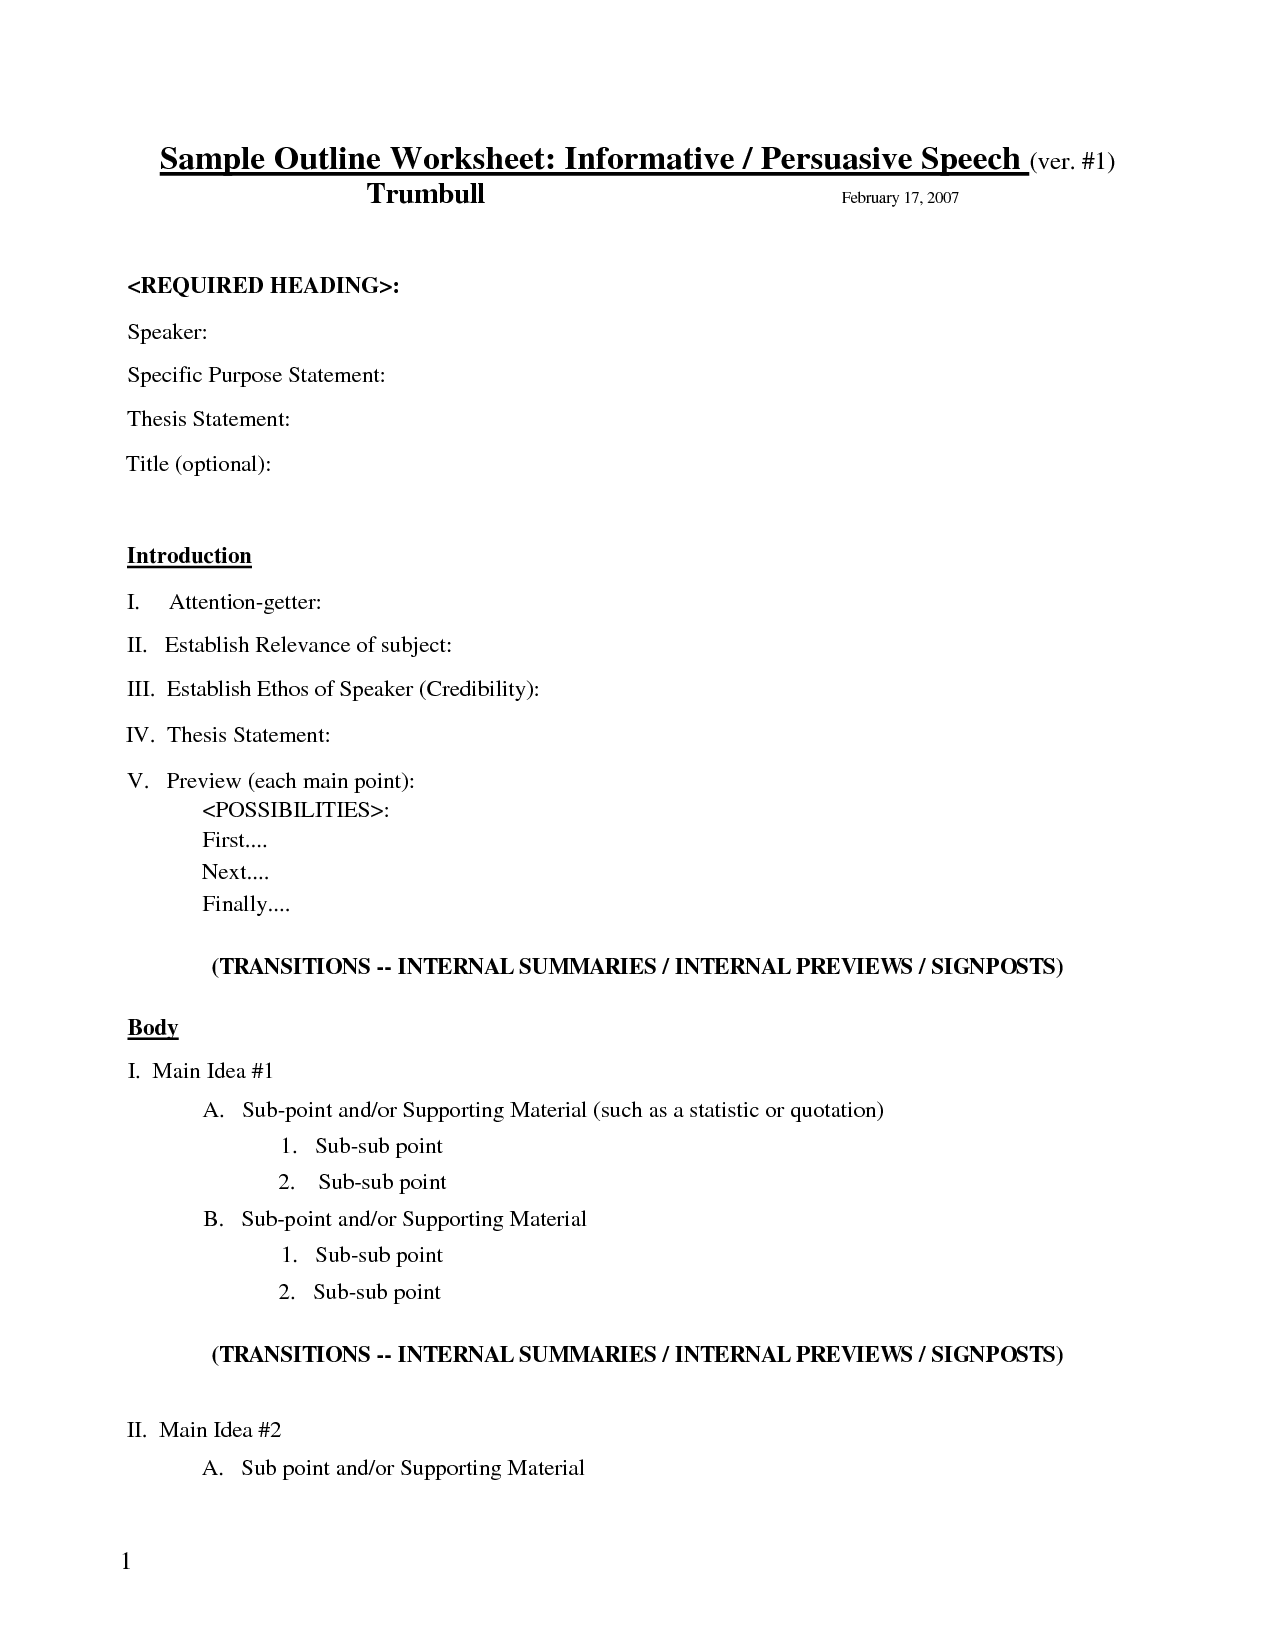 18 Best Images Of Outline Worksheet